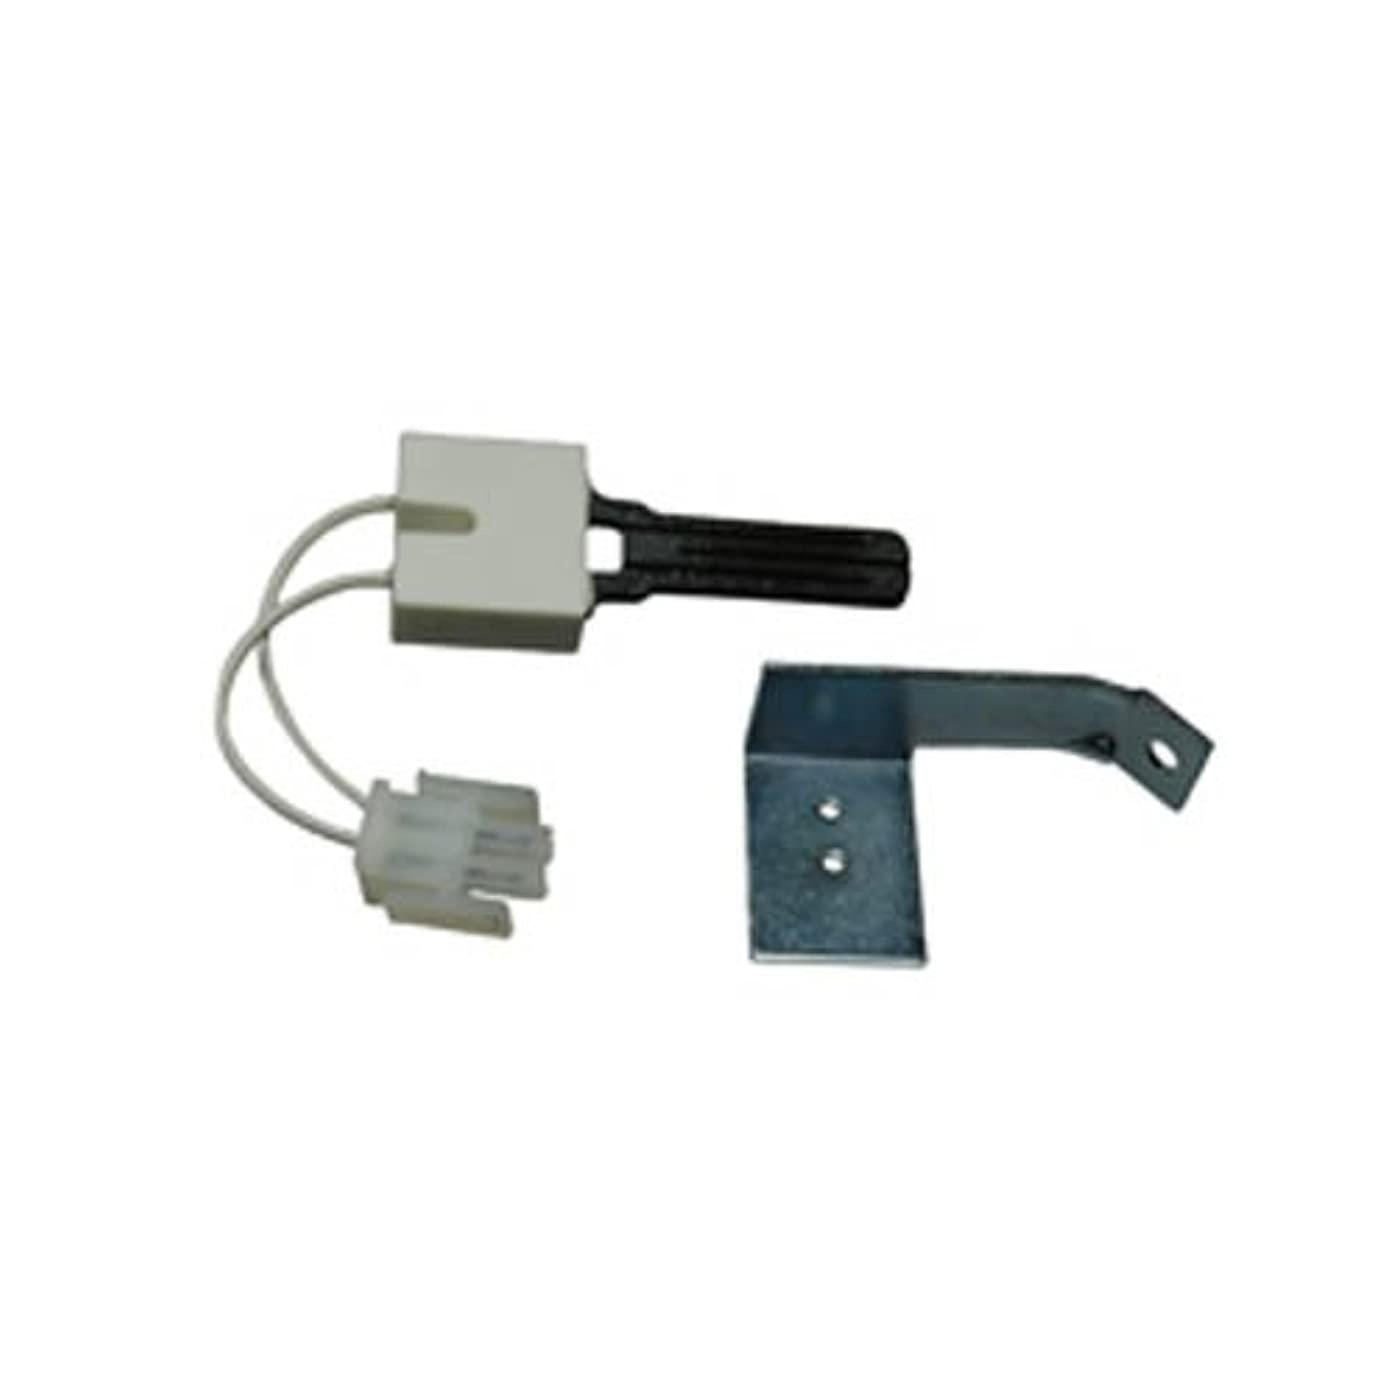 62-22686-02 - Rheem Furnace Aftermarket Replacement Ignitor / Igniter